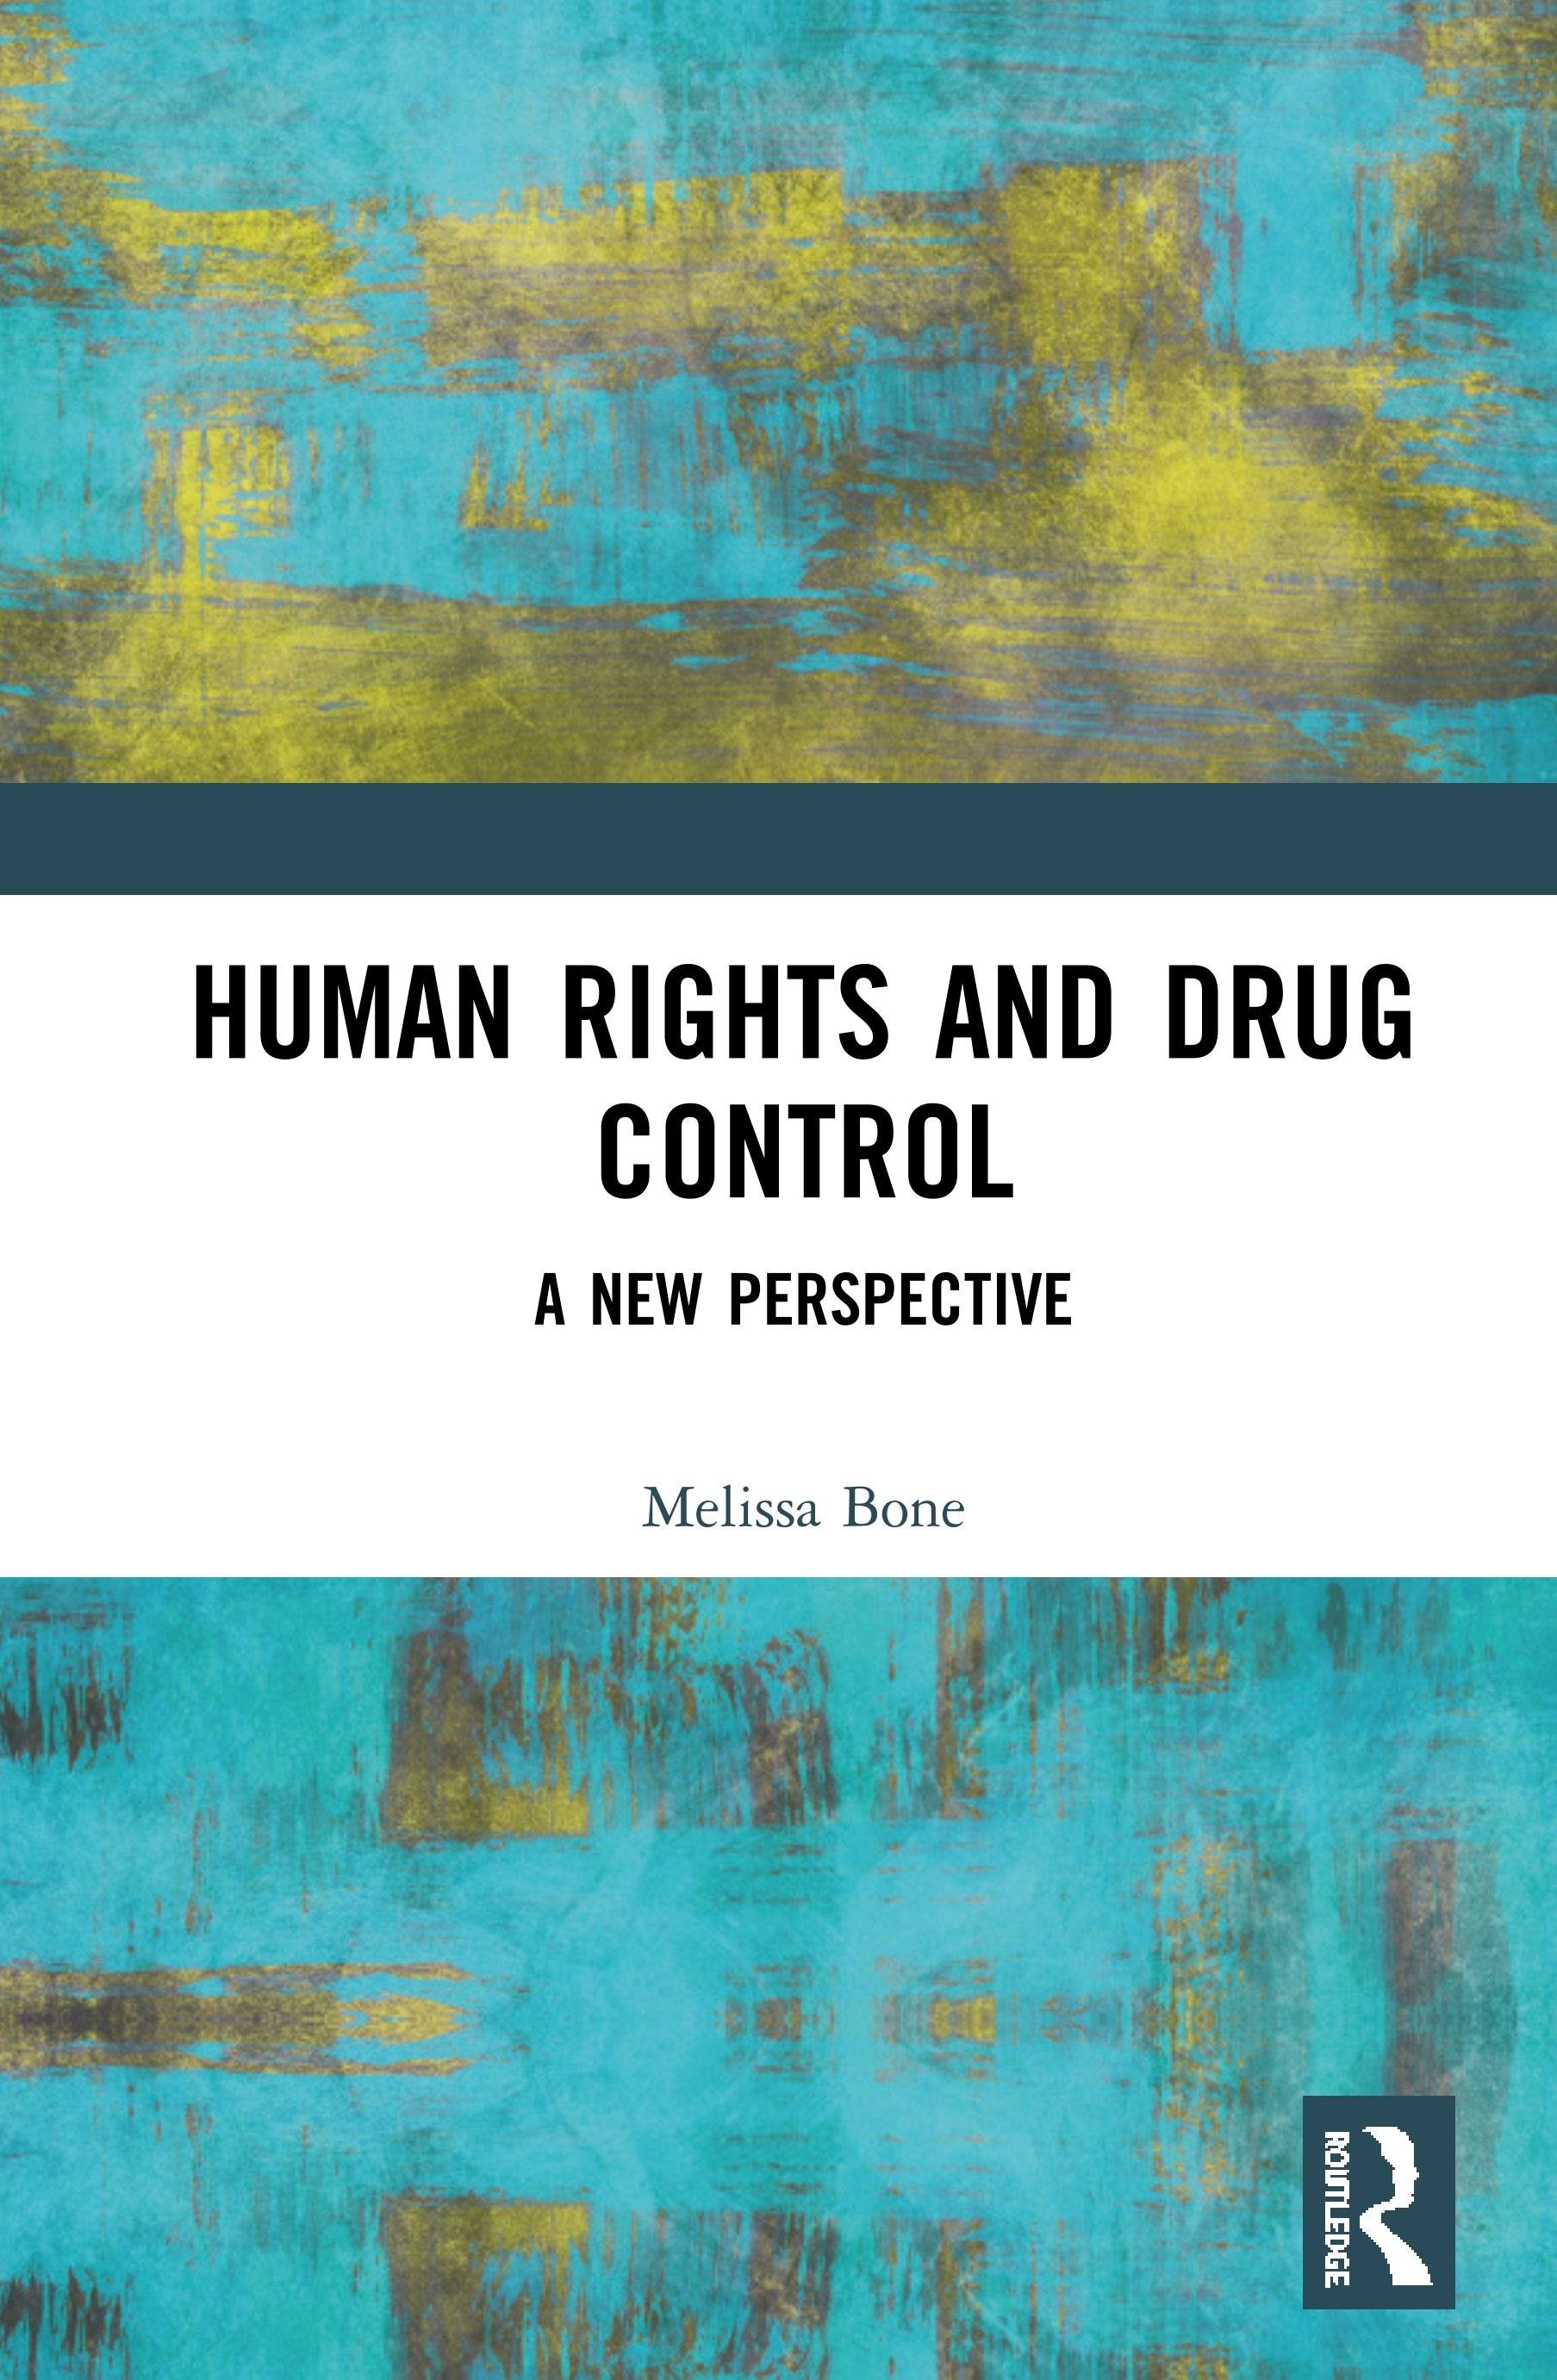 Human Rights and Drug Control: A New Perspective book cover